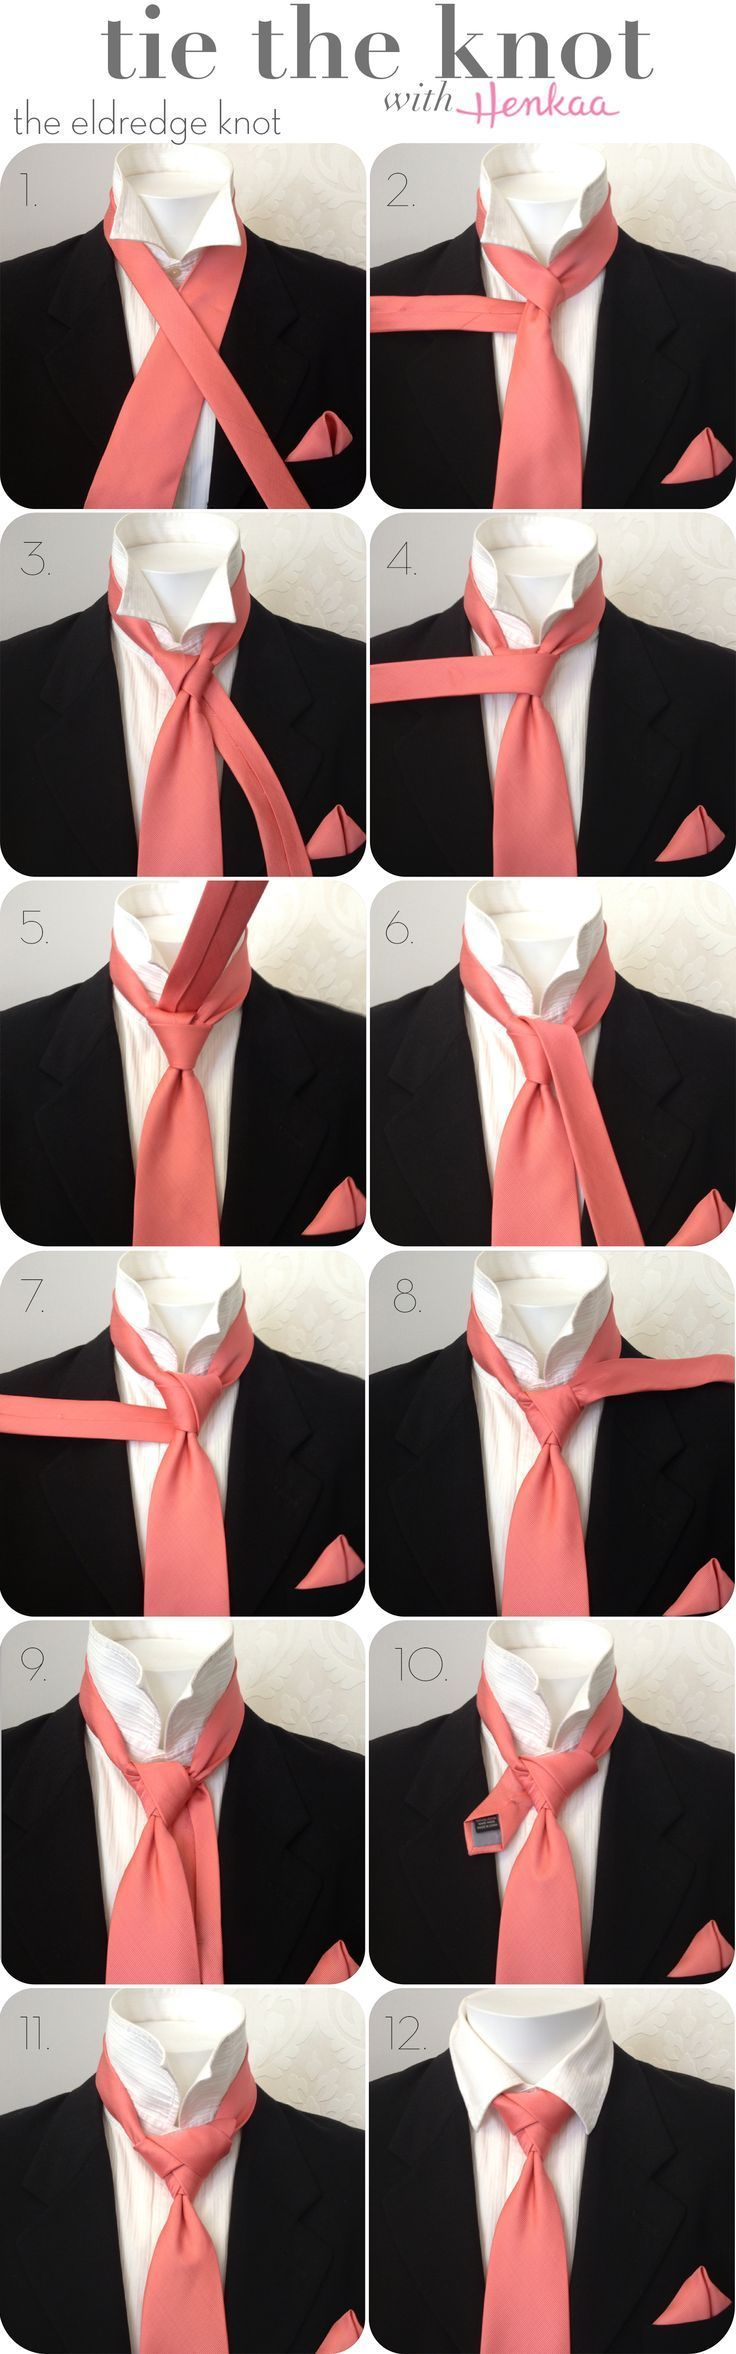 How to tie a tie caped eldredge knot youtube d s 98 pinterest ccuart Choice Image